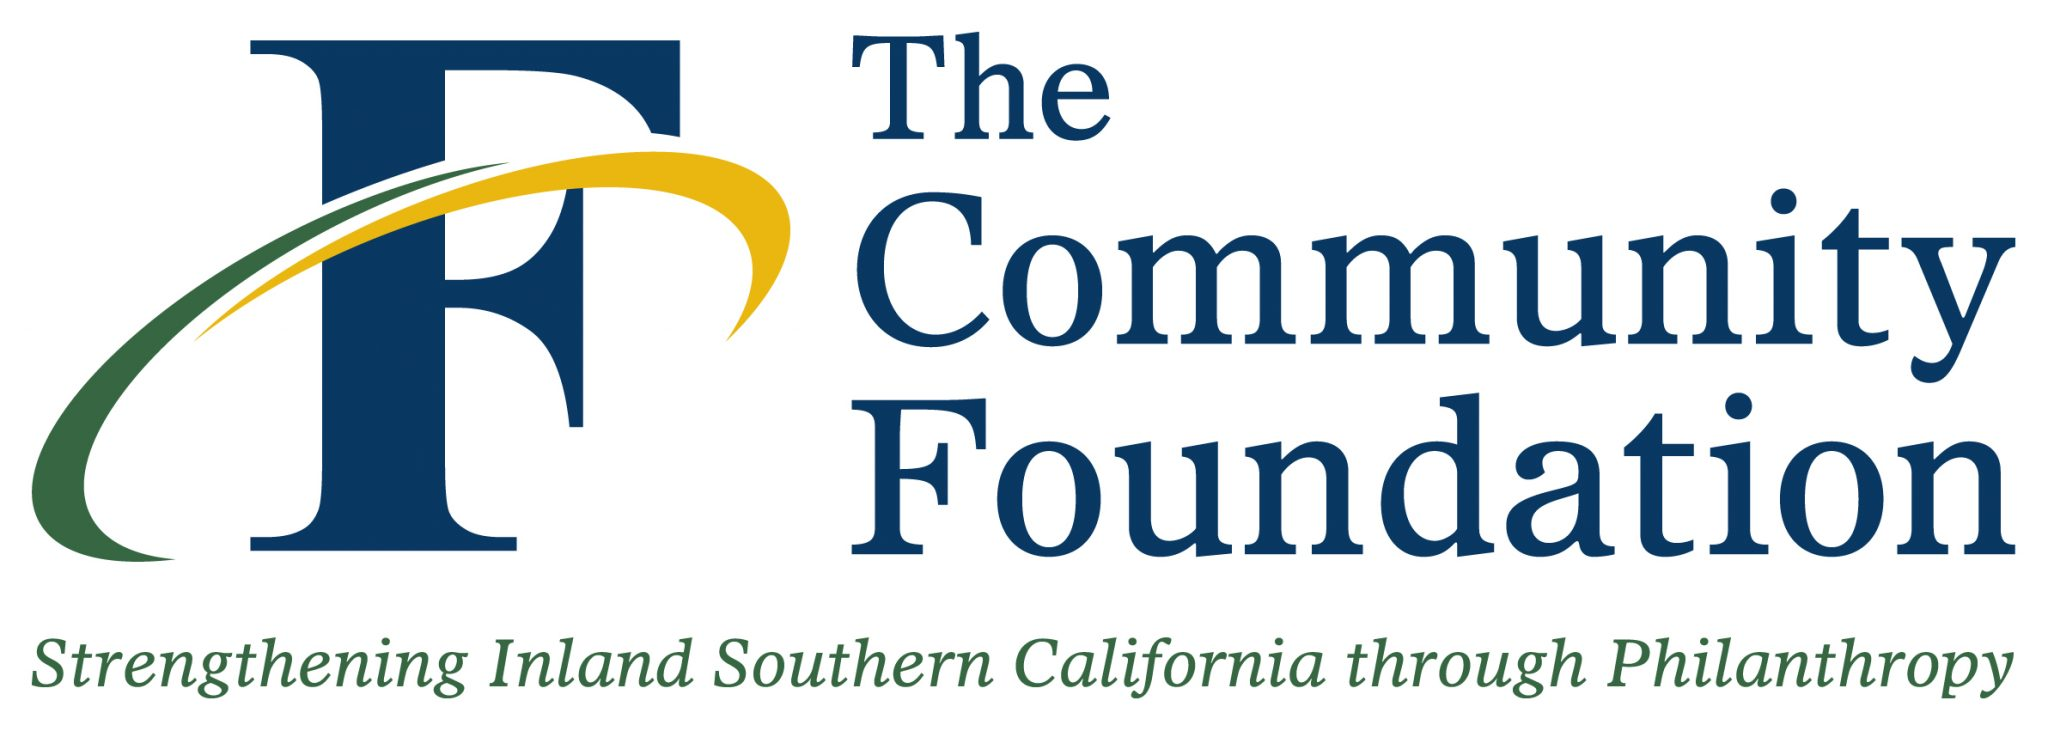 The Community Foundation, Donor for Soroptimist House of Hope. Addiction Recovery Center. Helping women establish and maintain sober and healthy lives.